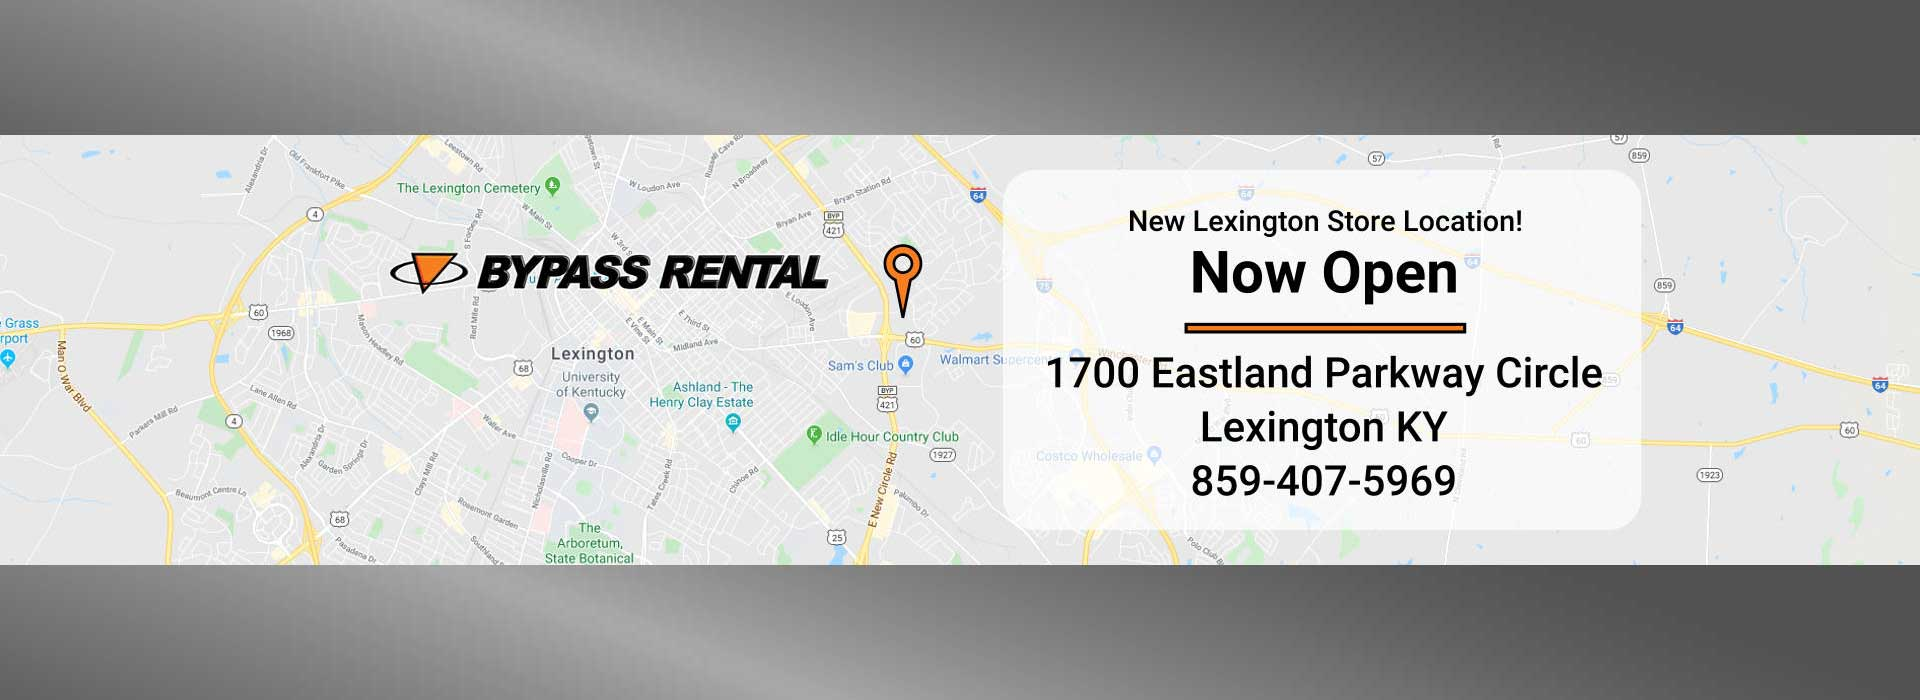 New Bypass Rental & Hardware Location - 1700 Eastland Pkwy Circle, Lexington KY